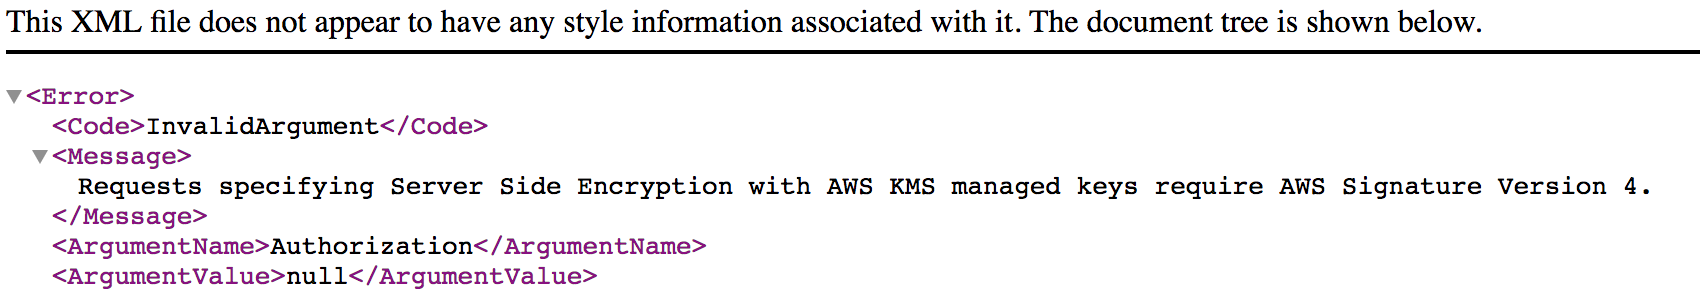 Requests specifying Server Side Encryption with AWS KMS